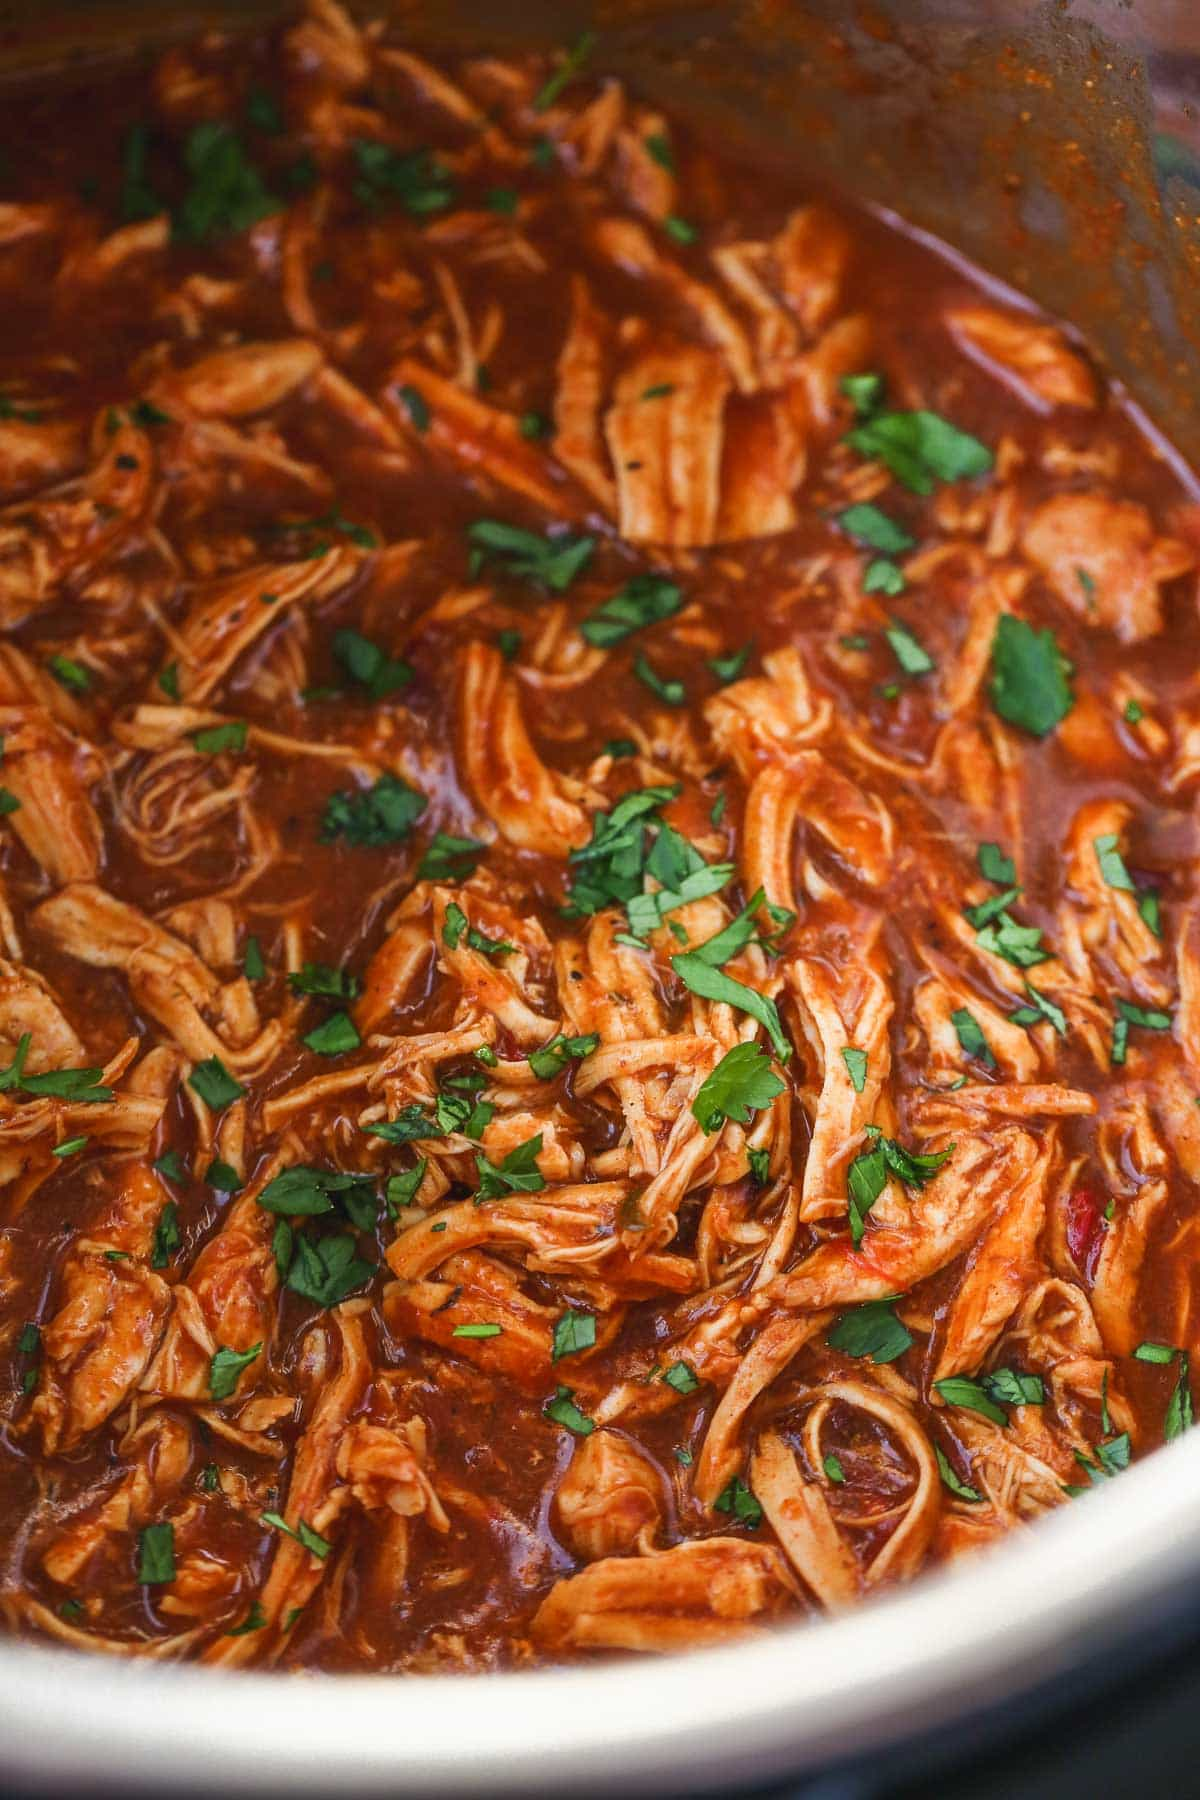 Shredded salsa chicken inside the Instant Pot, garnished with chopped parsley